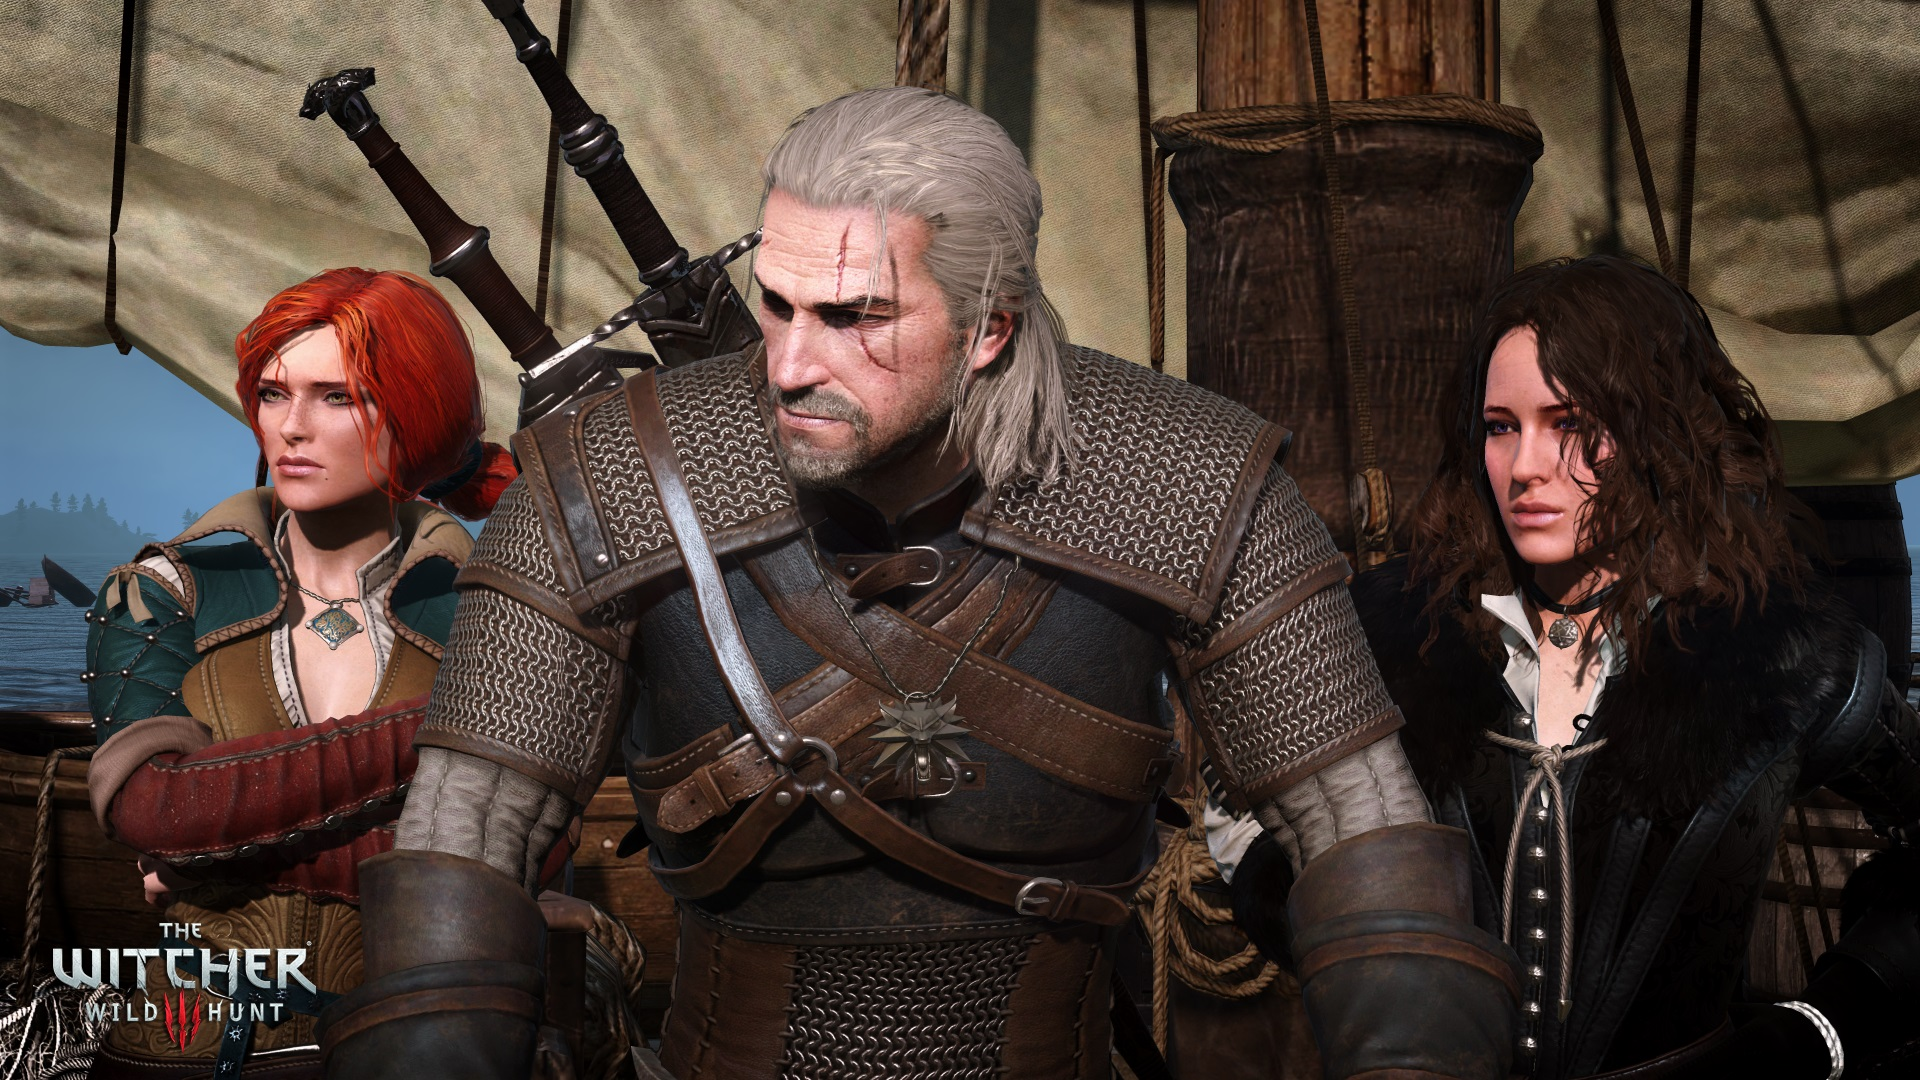 The Witcher se convertirá en una serie gracias a Netflix